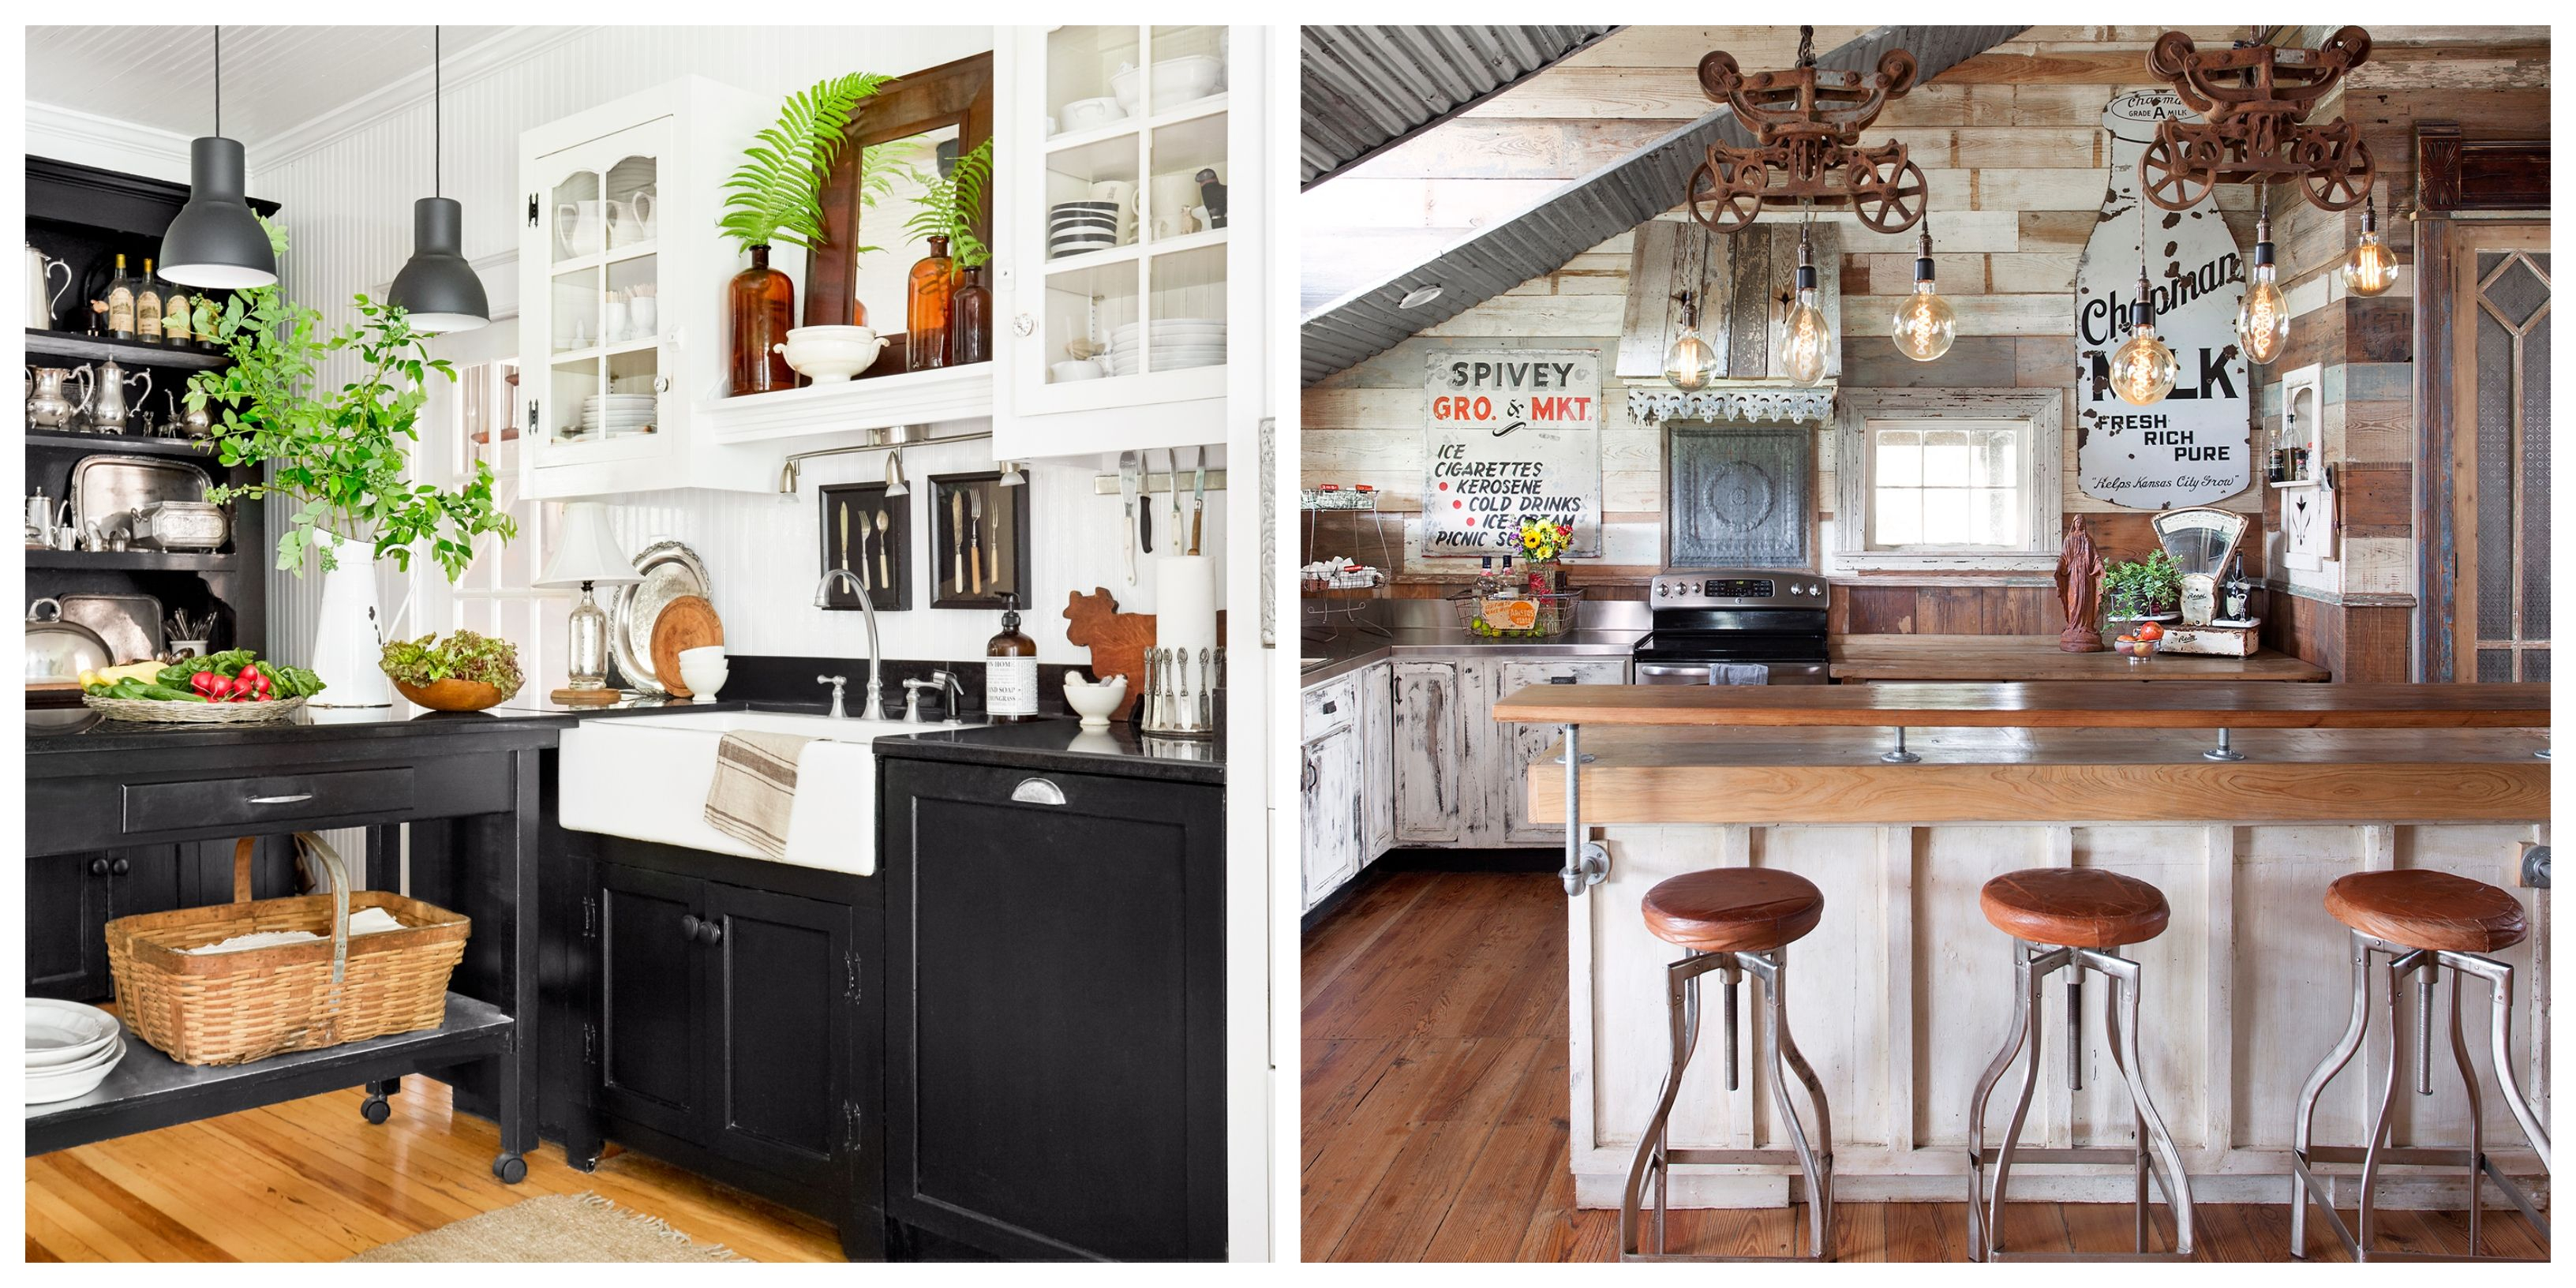 34 Farmhouse Style Kitchens – Rustic Decor Ideas For Kitchens In Personalized Distressed Vintage Look Kitchen Metal Sign Wall Decor (View 24 of 30)